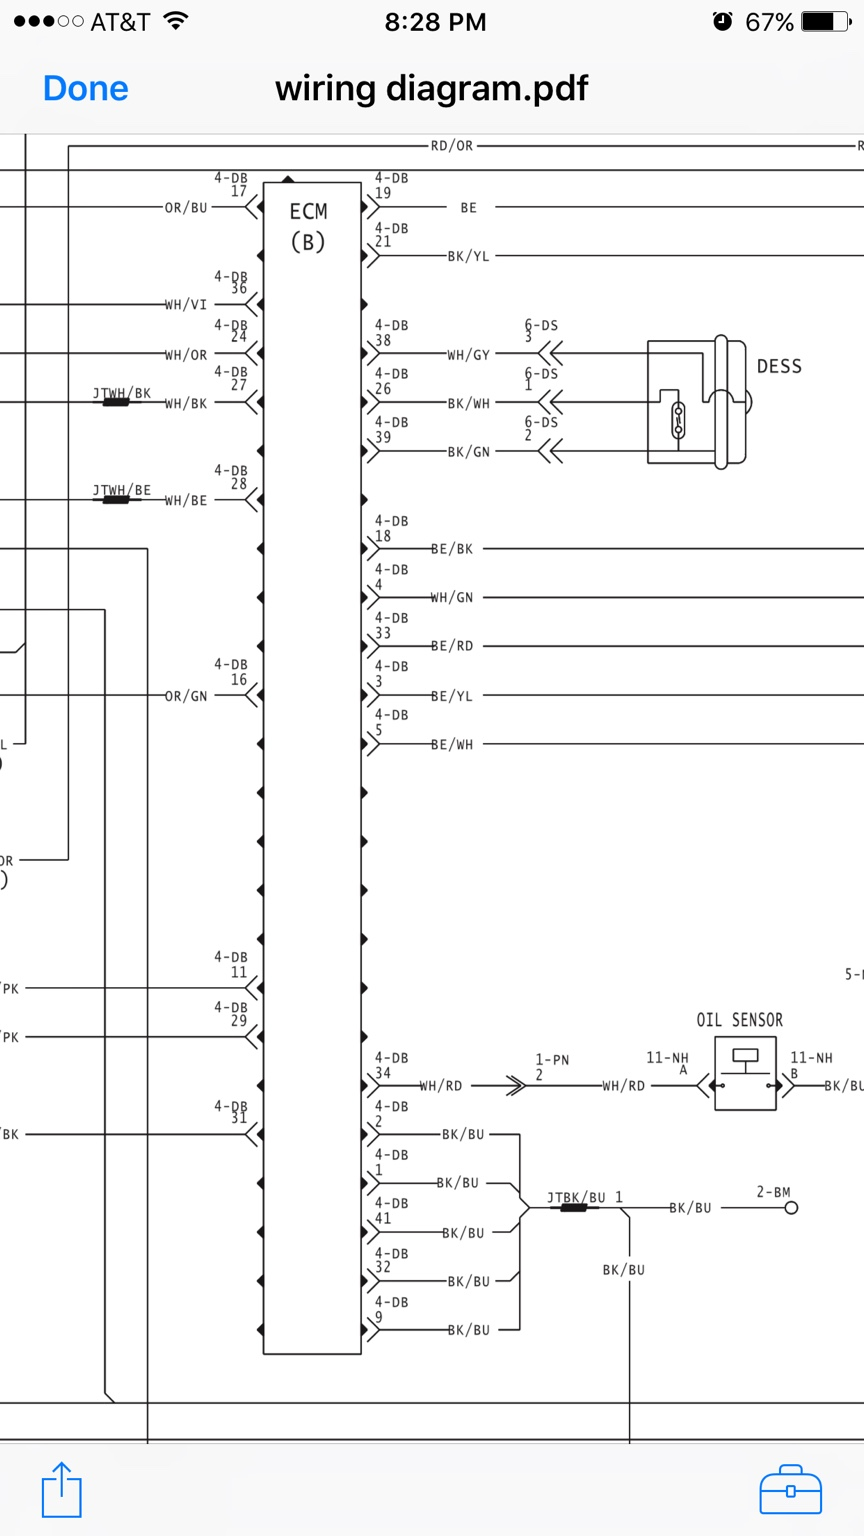 hight resolution of 1000 sdi ground wires from ecm mach z rt and mxz 1000 sdi models dootalk classifieds wire diagram dootalk